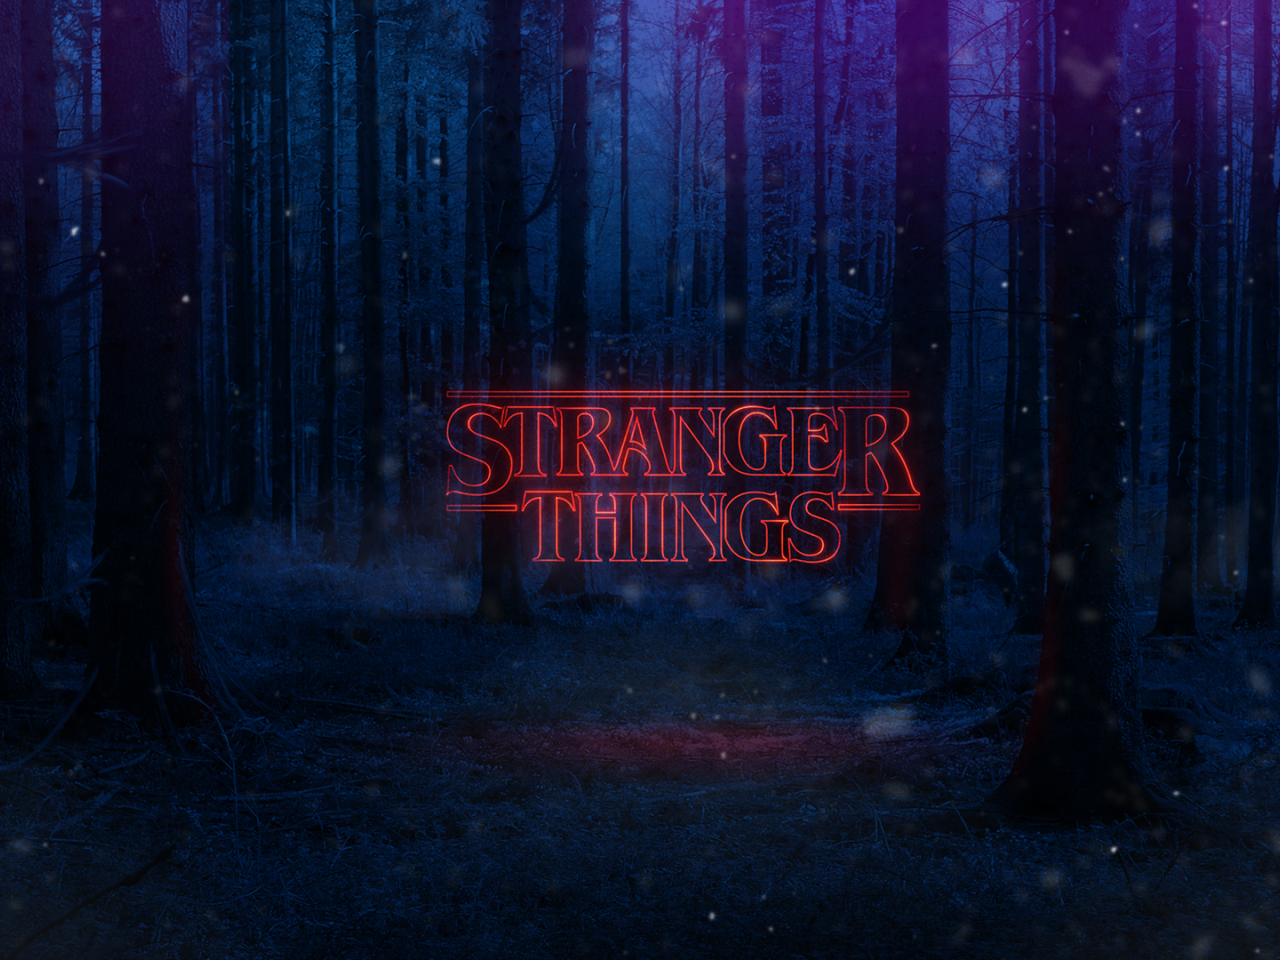 Stranger Things Text Poster, Full HD Wallpaper Wallpaper Hd For Mobile Samsung Galaxy S4